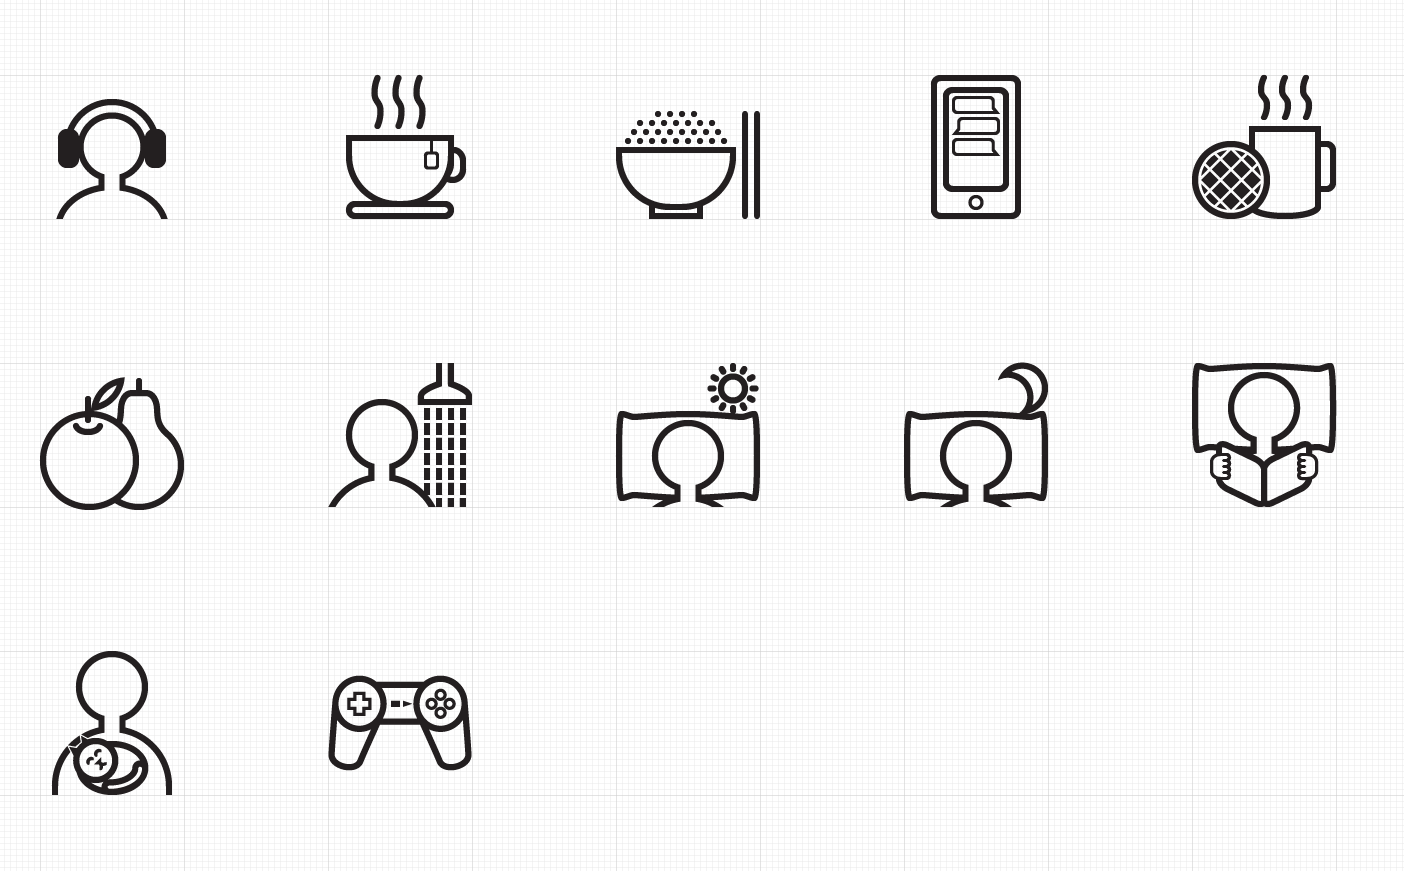 Illustrate your Day: An Intro to Symbol Design